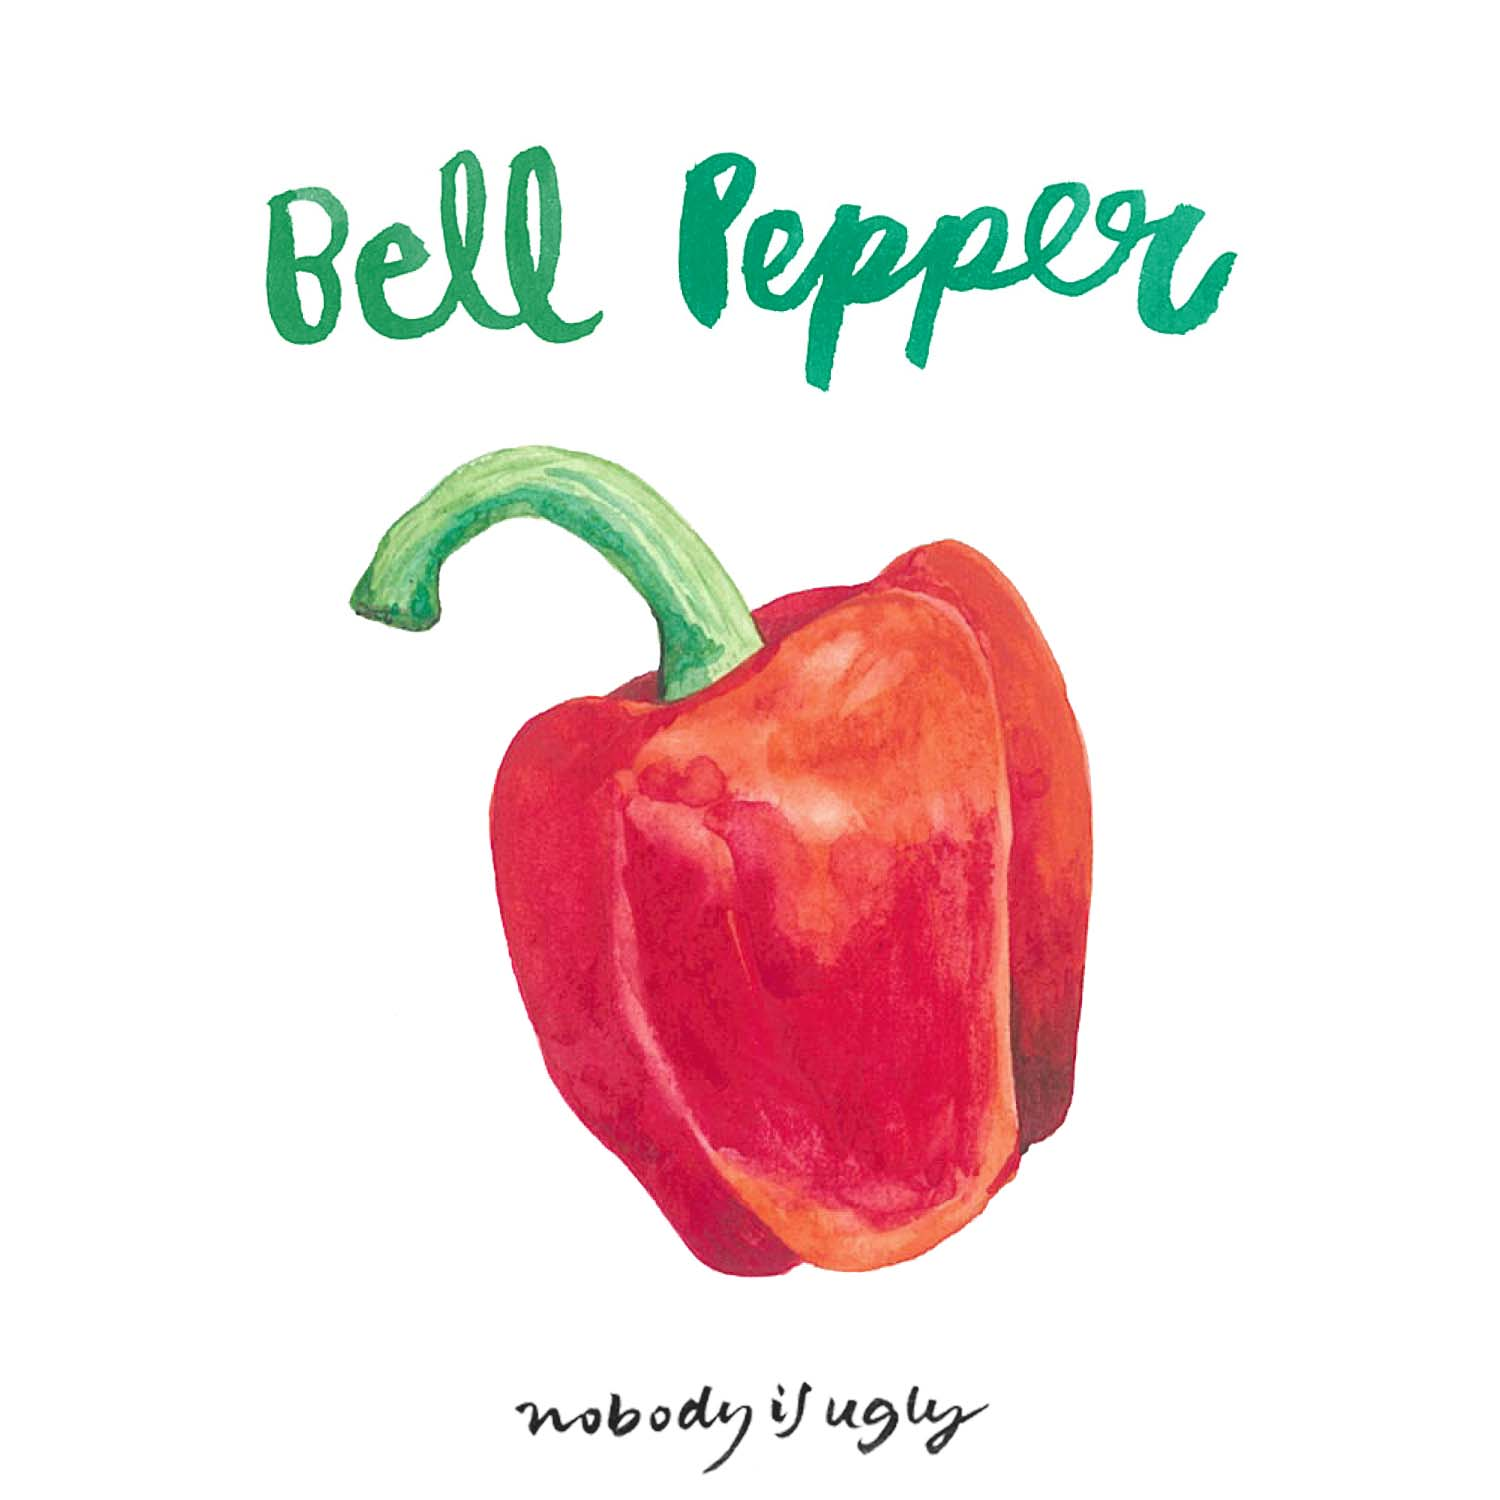 bellpepper